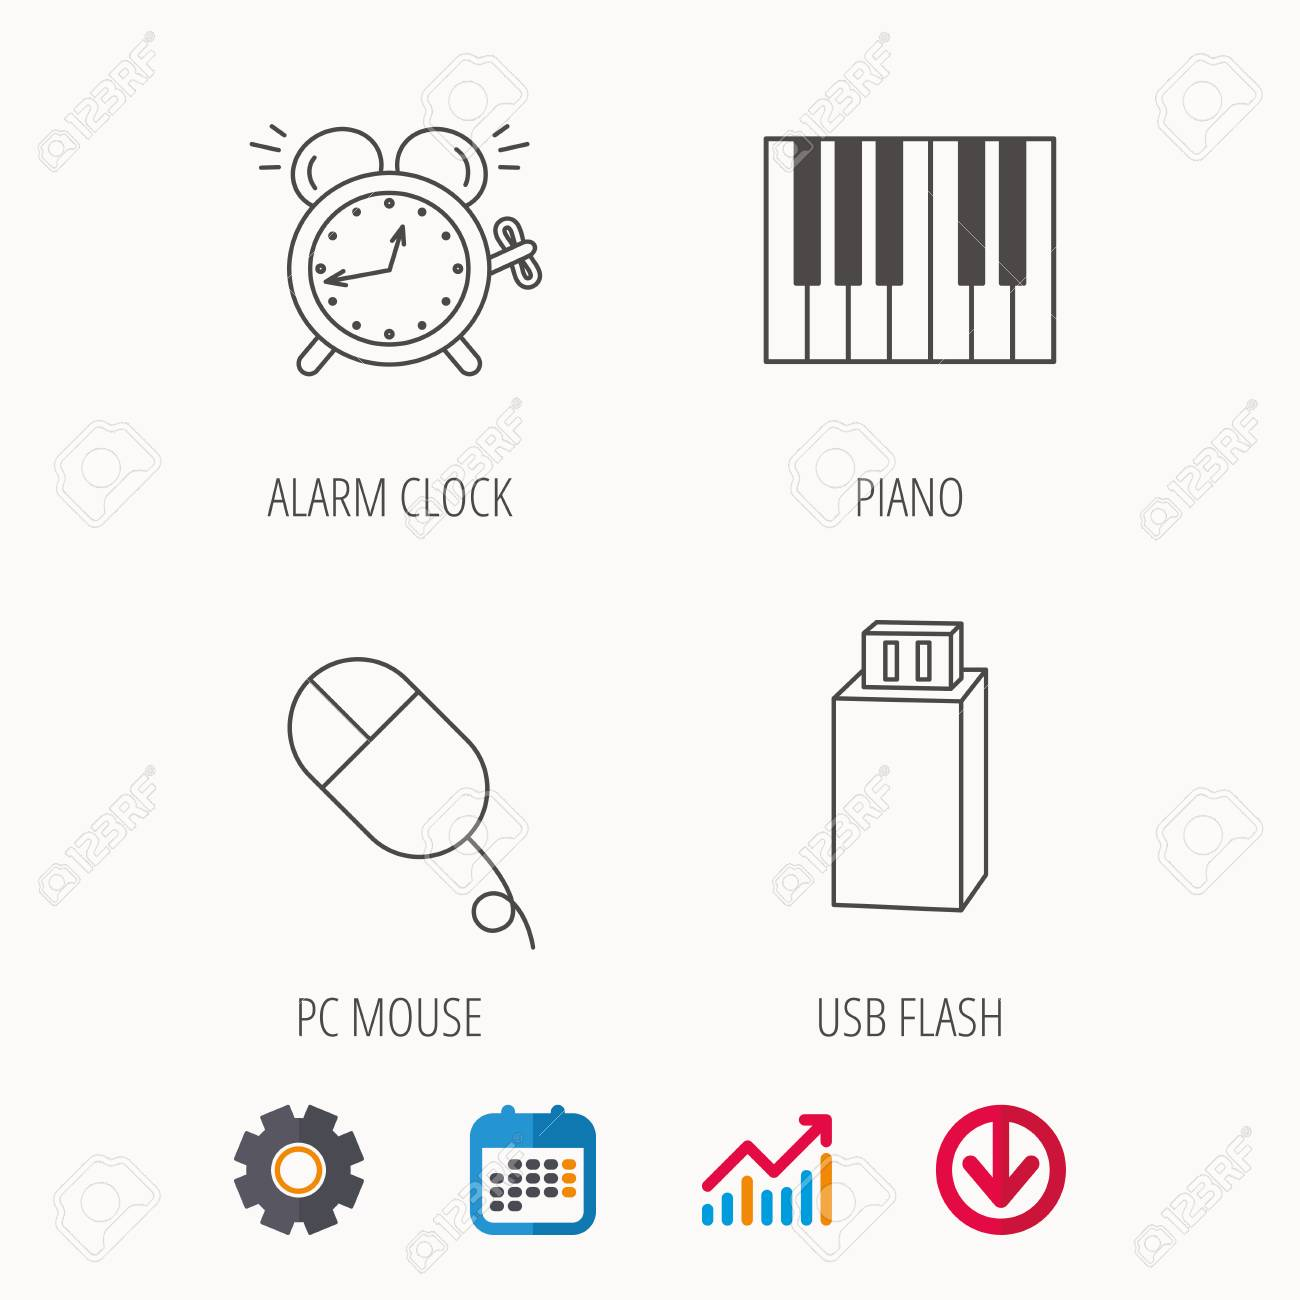 Alarm clock, USB flash and PC mouse icons  Piano linear sign